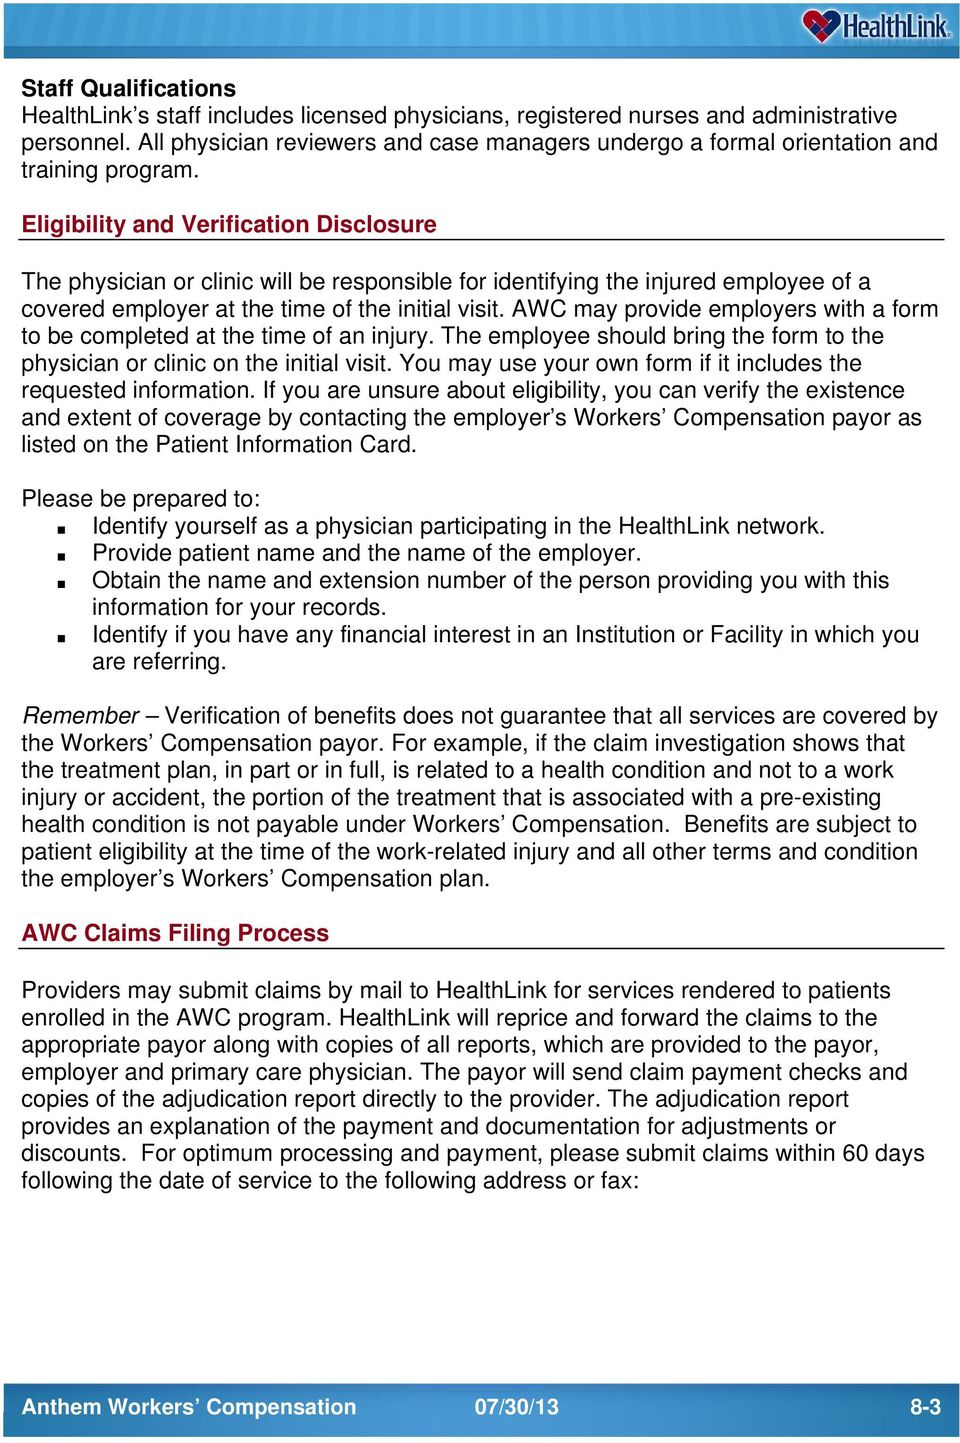 Eligibility and Verification Disclosure The physician or clinic will be responsible for identifying the injured employee of a covered employer at the time of the initial visit.